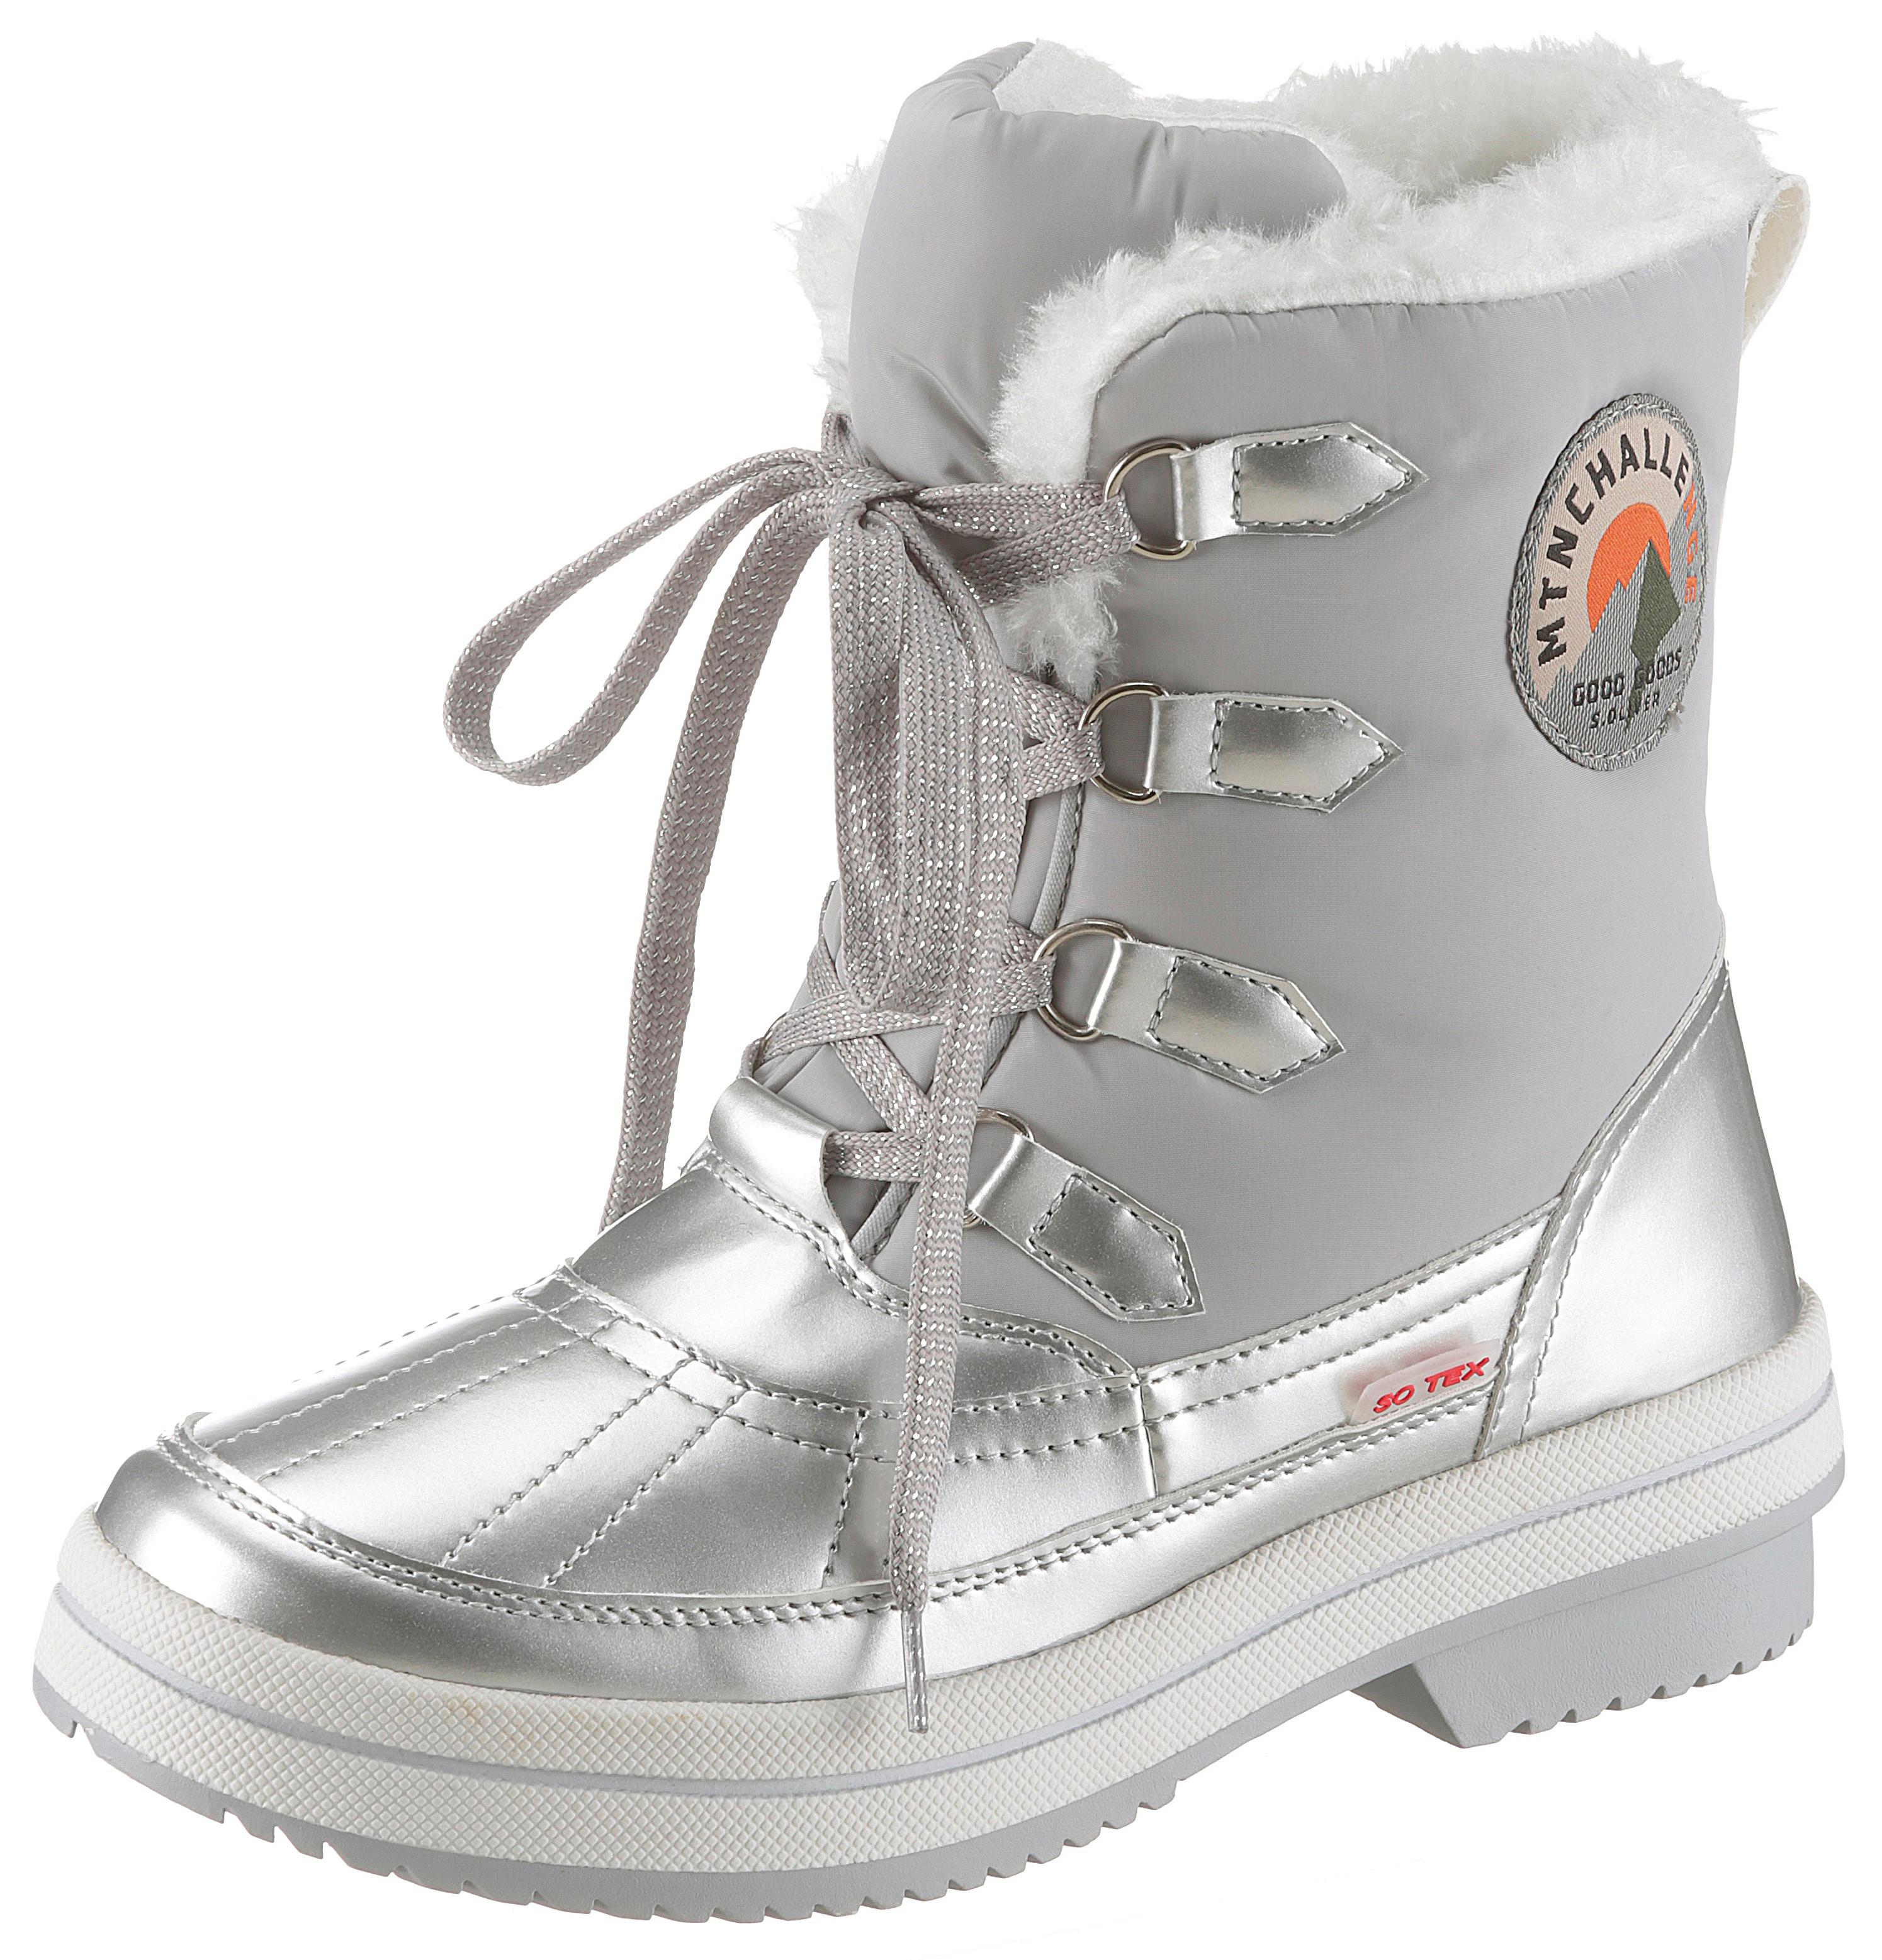 s.Oliver Winterboots | Schuhe > Boots > Winterboots | s.Oliver